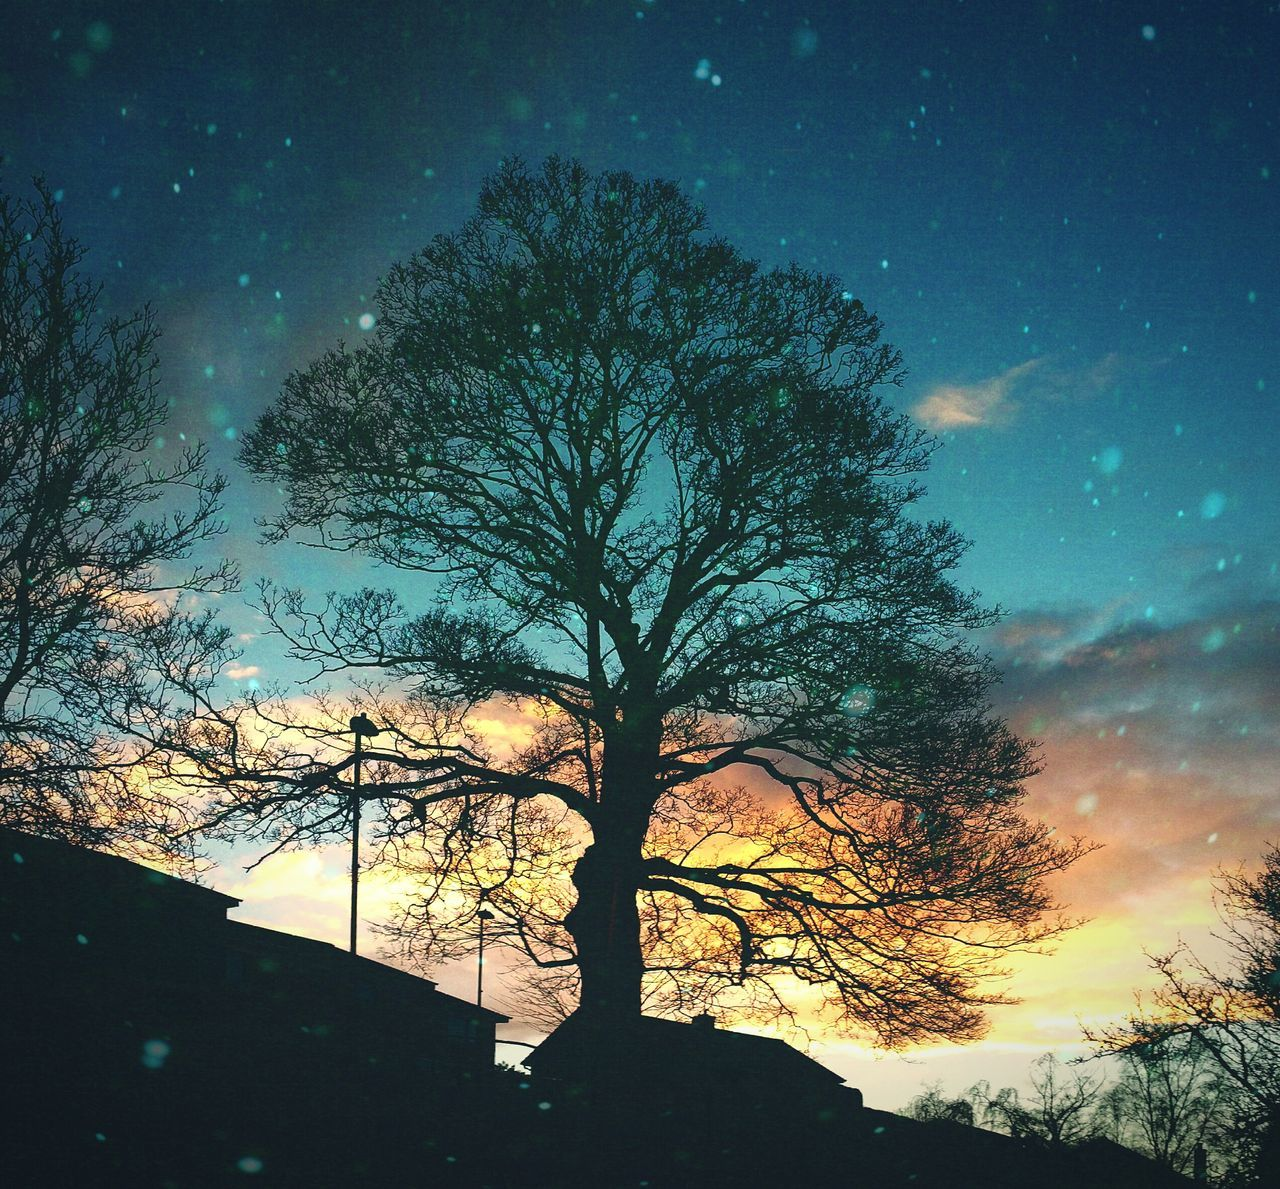 ... as the Earth dances in Space ... Sky Sunset Night Tree Dusk Dramatic Sky Silhouette Scenics Oak Tree Newtown Powys Sunset Leafless Branches Edit Maximalism No Minimalism Grain дерево Закат дуб